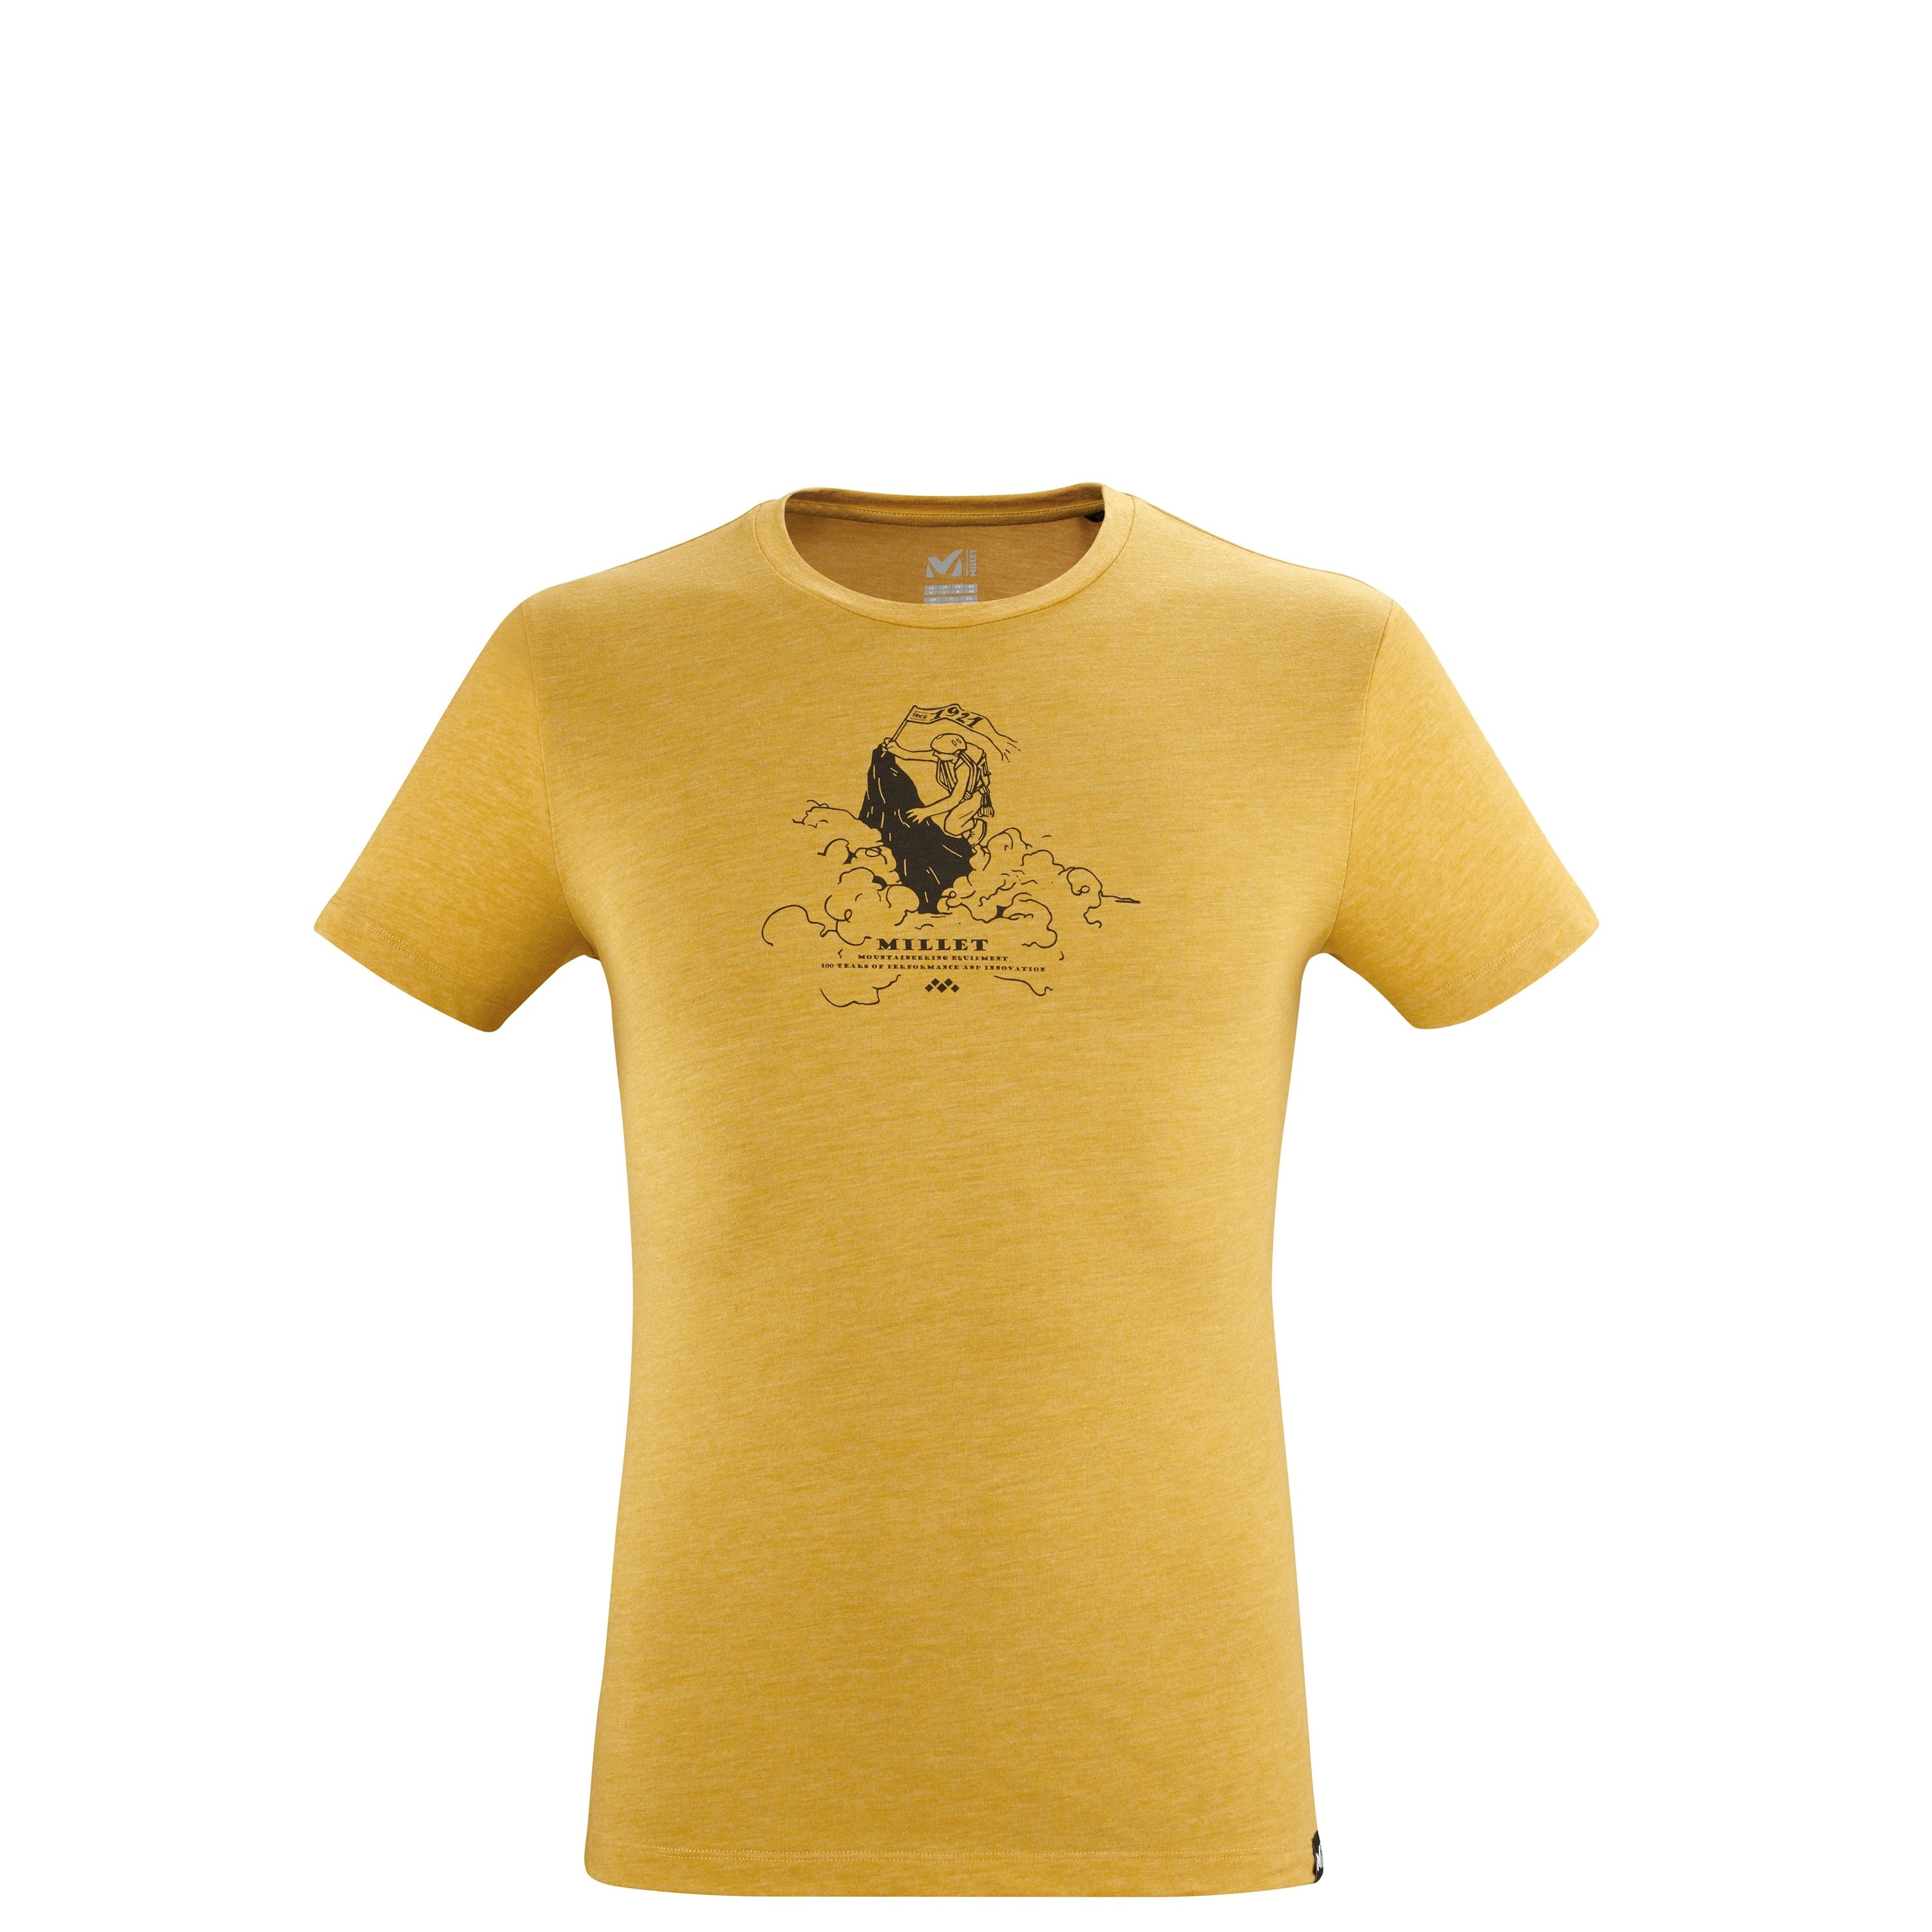 LIMITED COLORS TS SS M